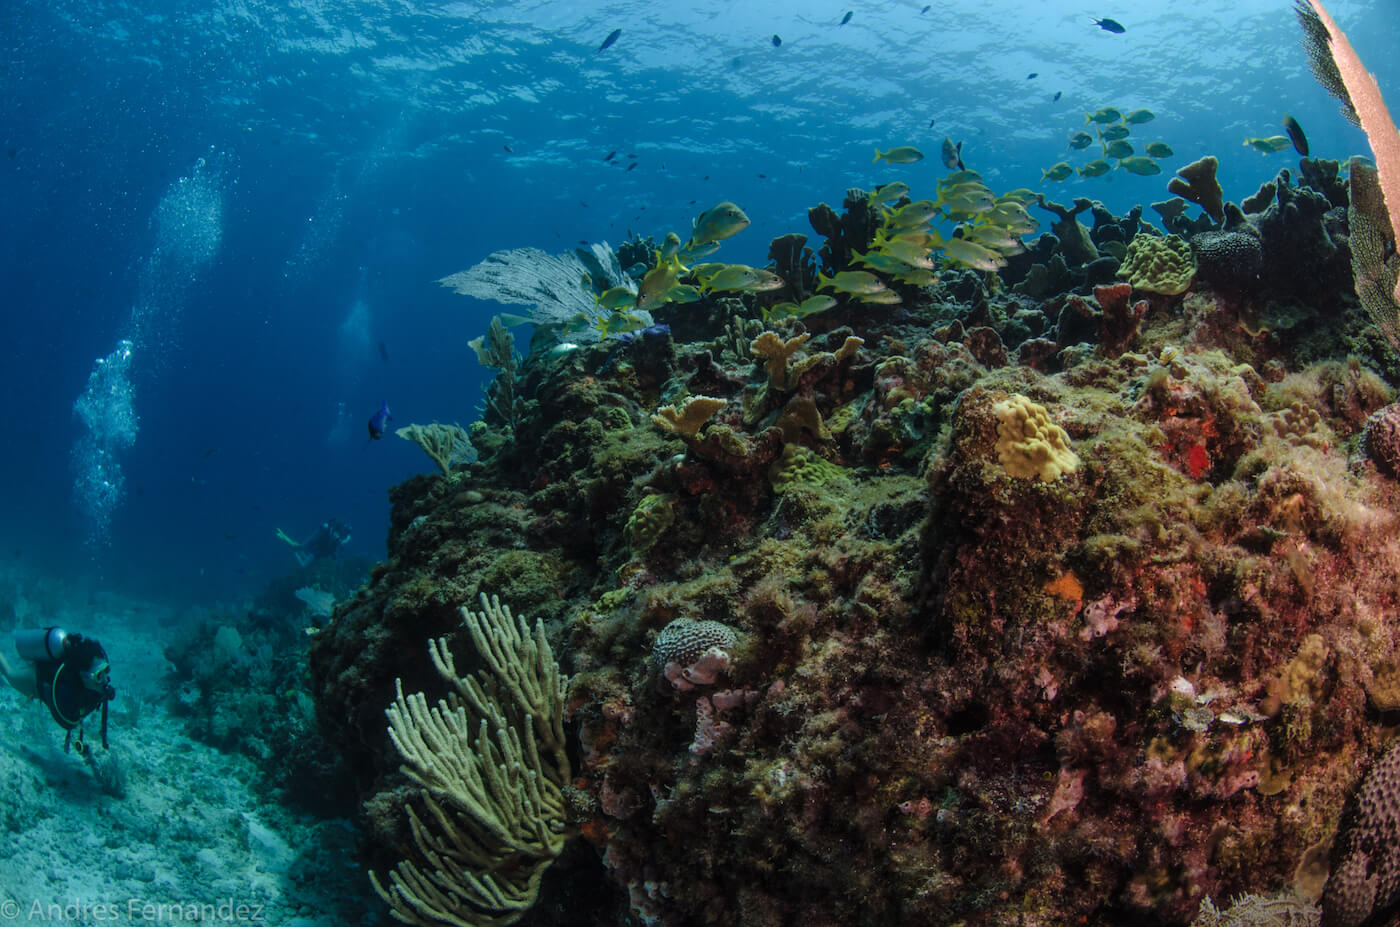 Isla Mujeres Coral Reefs Squalo Adventures Scuba Diving Snorkeling-7